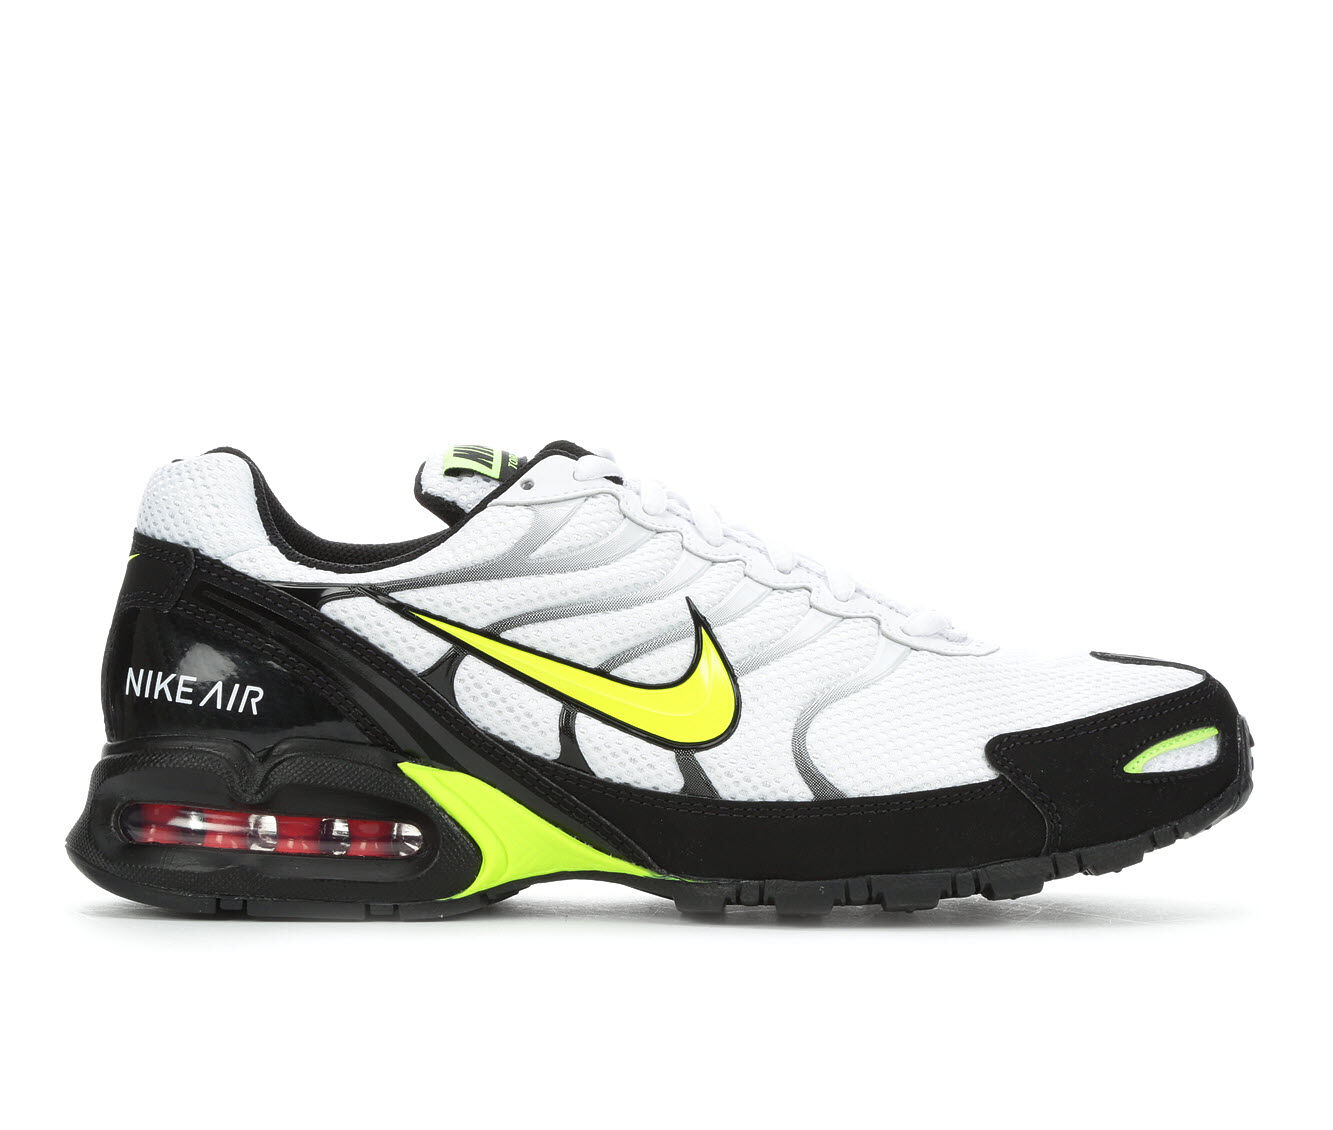 buy authentic Men's Nike Air Max Torch 4 Running Shoes Wh/Bk/Vt/Rd 100